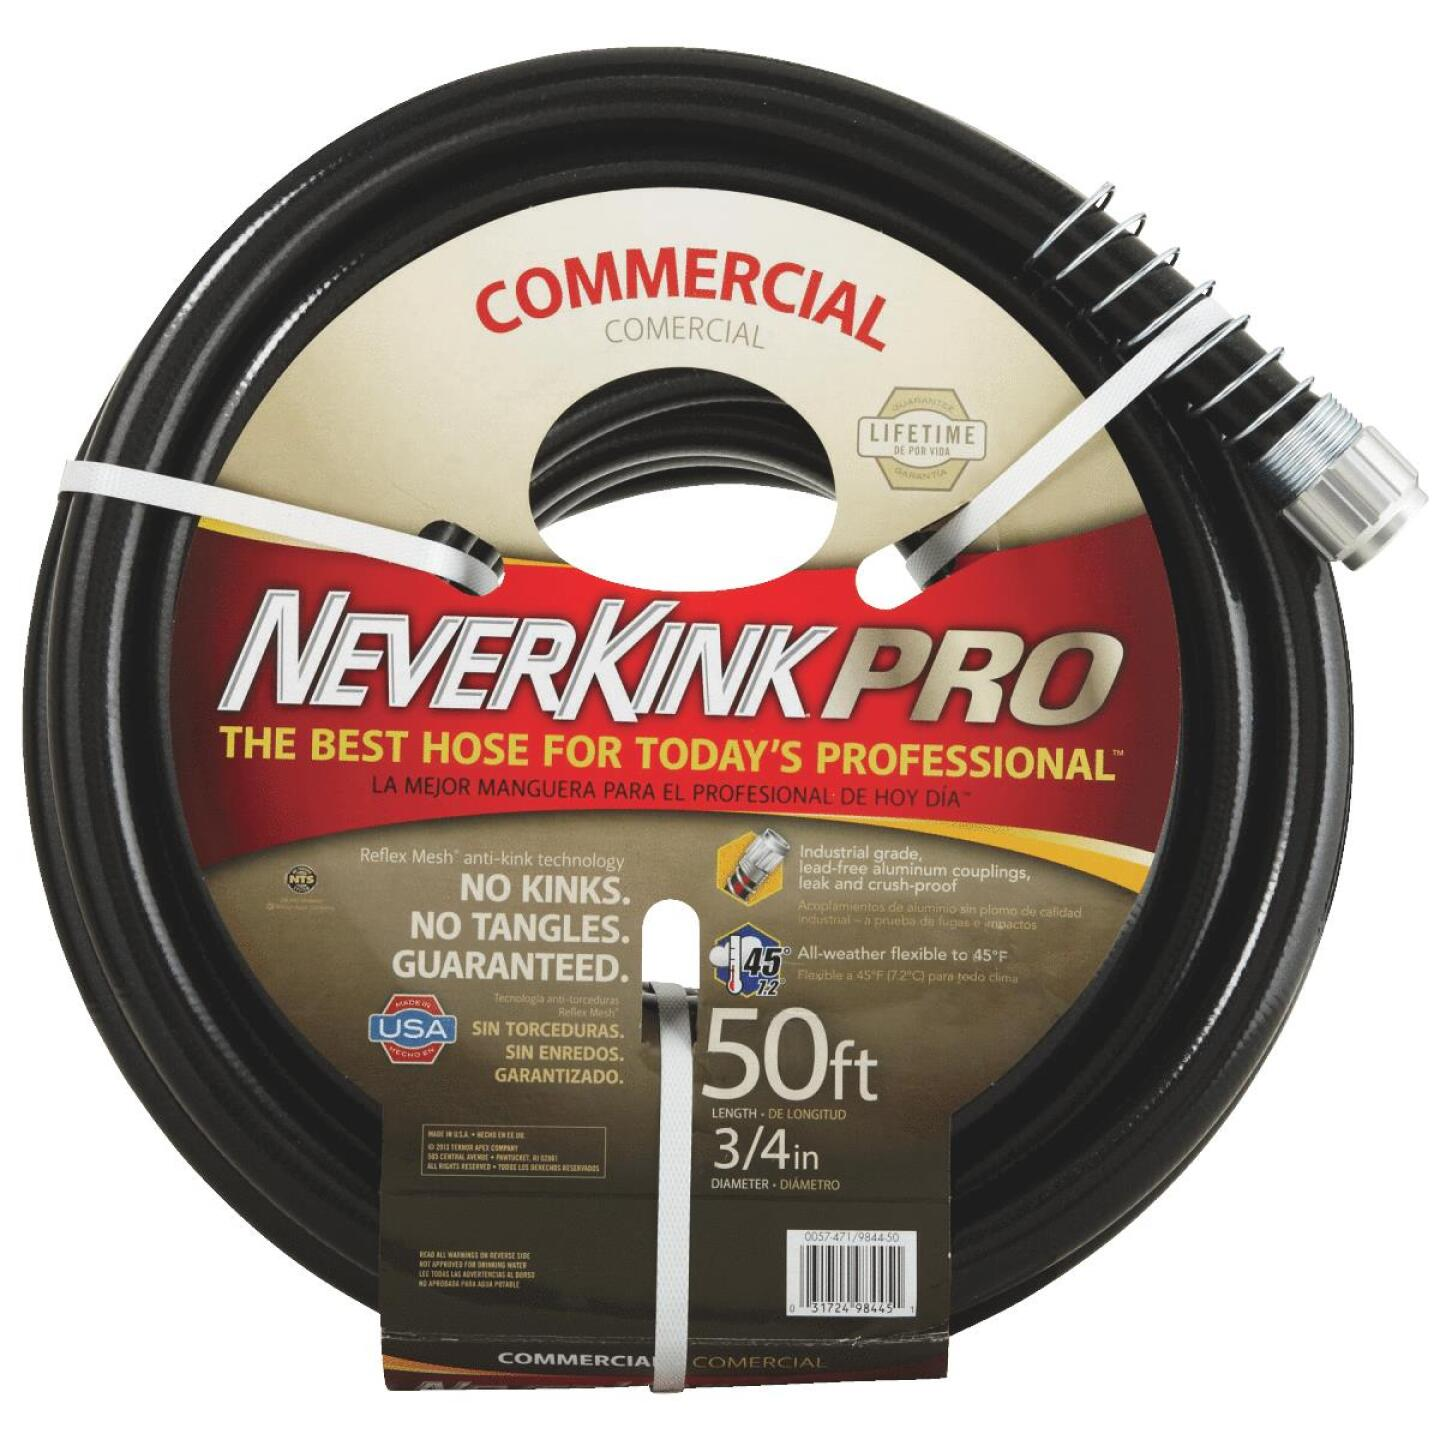 Neverkink Pro 3/4 In. Dia. x 50 Ft. L. Commercial Garden Hose Image 1